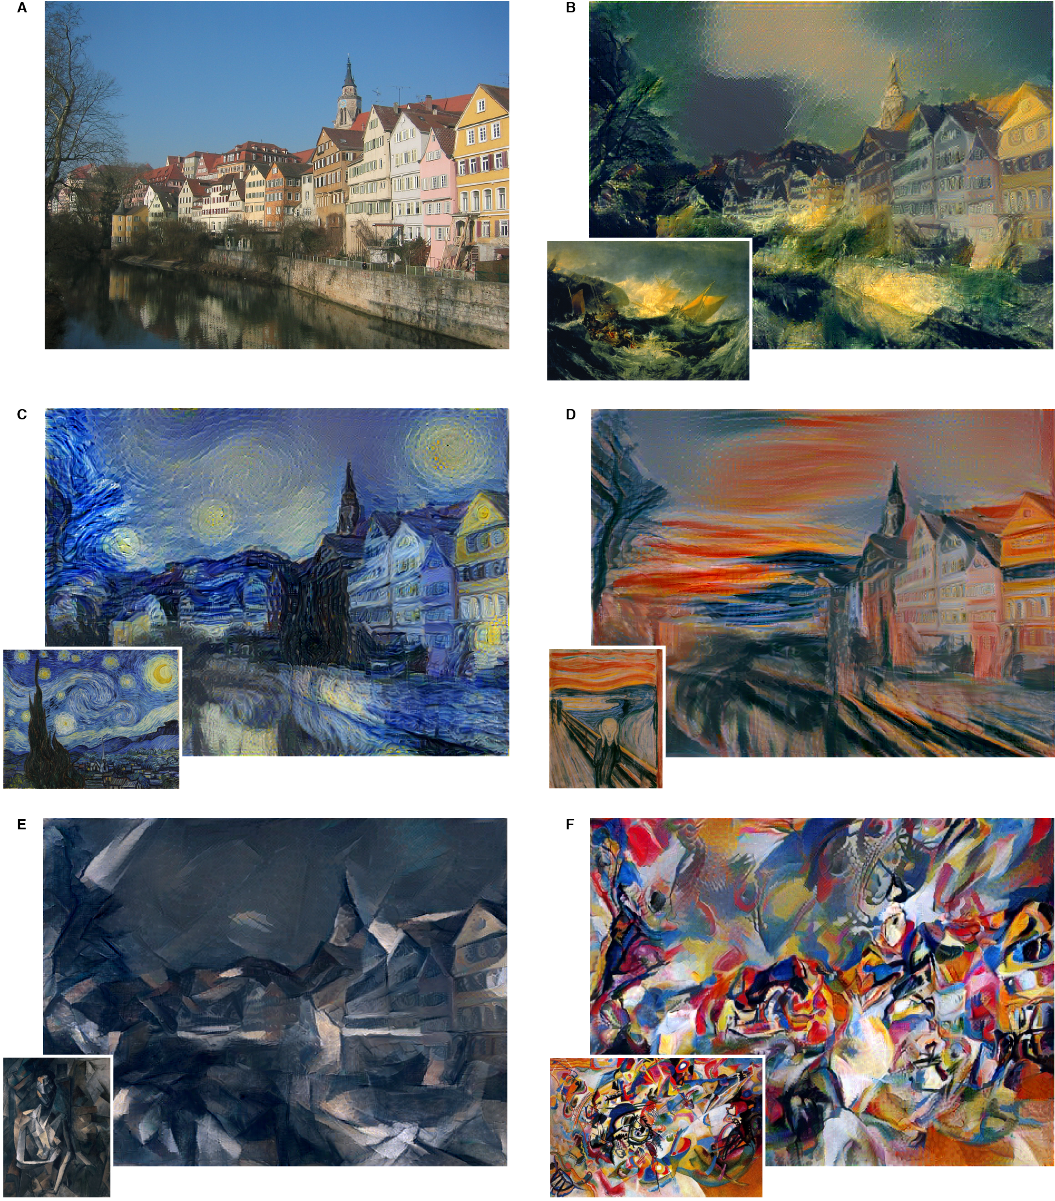 Right: The exhibit photo for A Neural Algorithm of Artistic Style